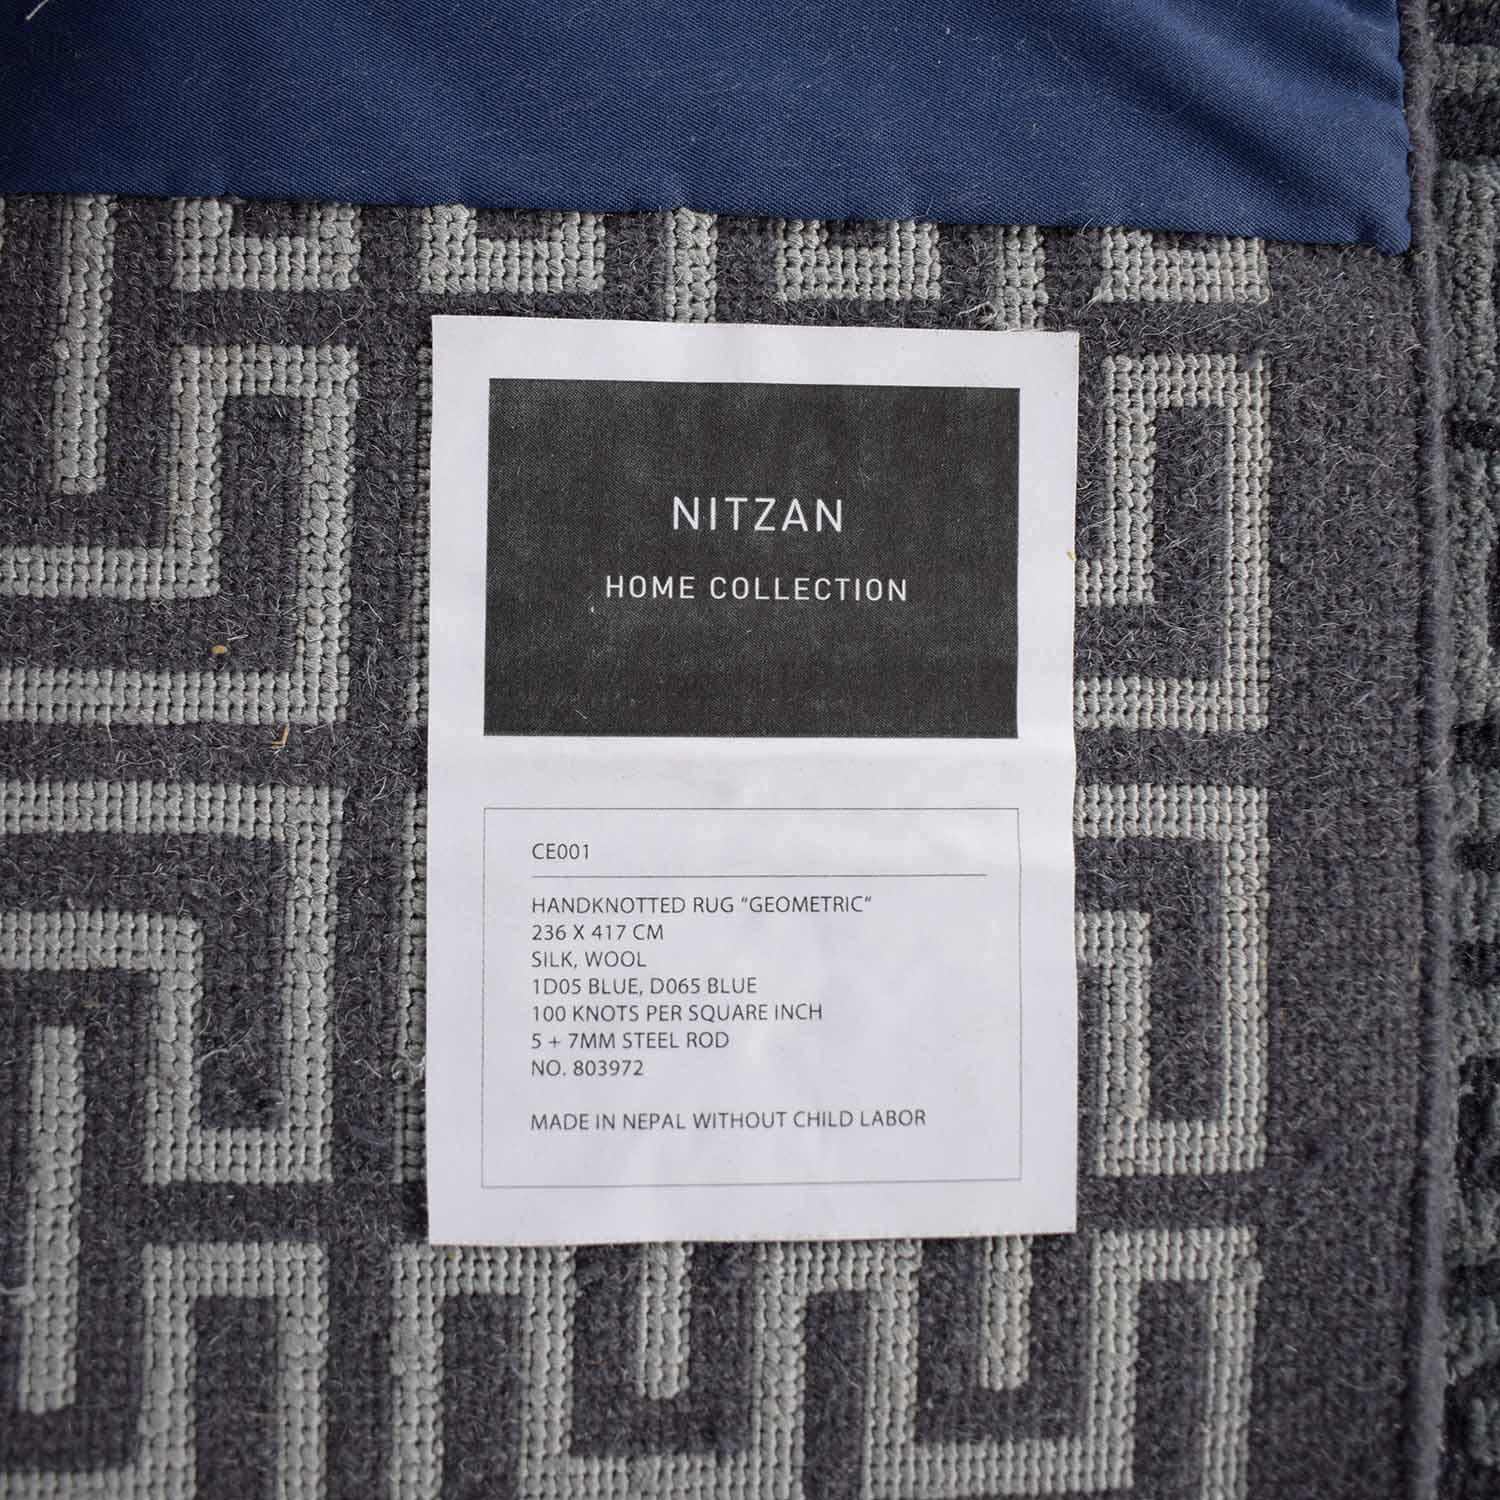 buy Nitzan Home Nitzan Home Collection Hand knotted Silk and Wool Geometric Rug online